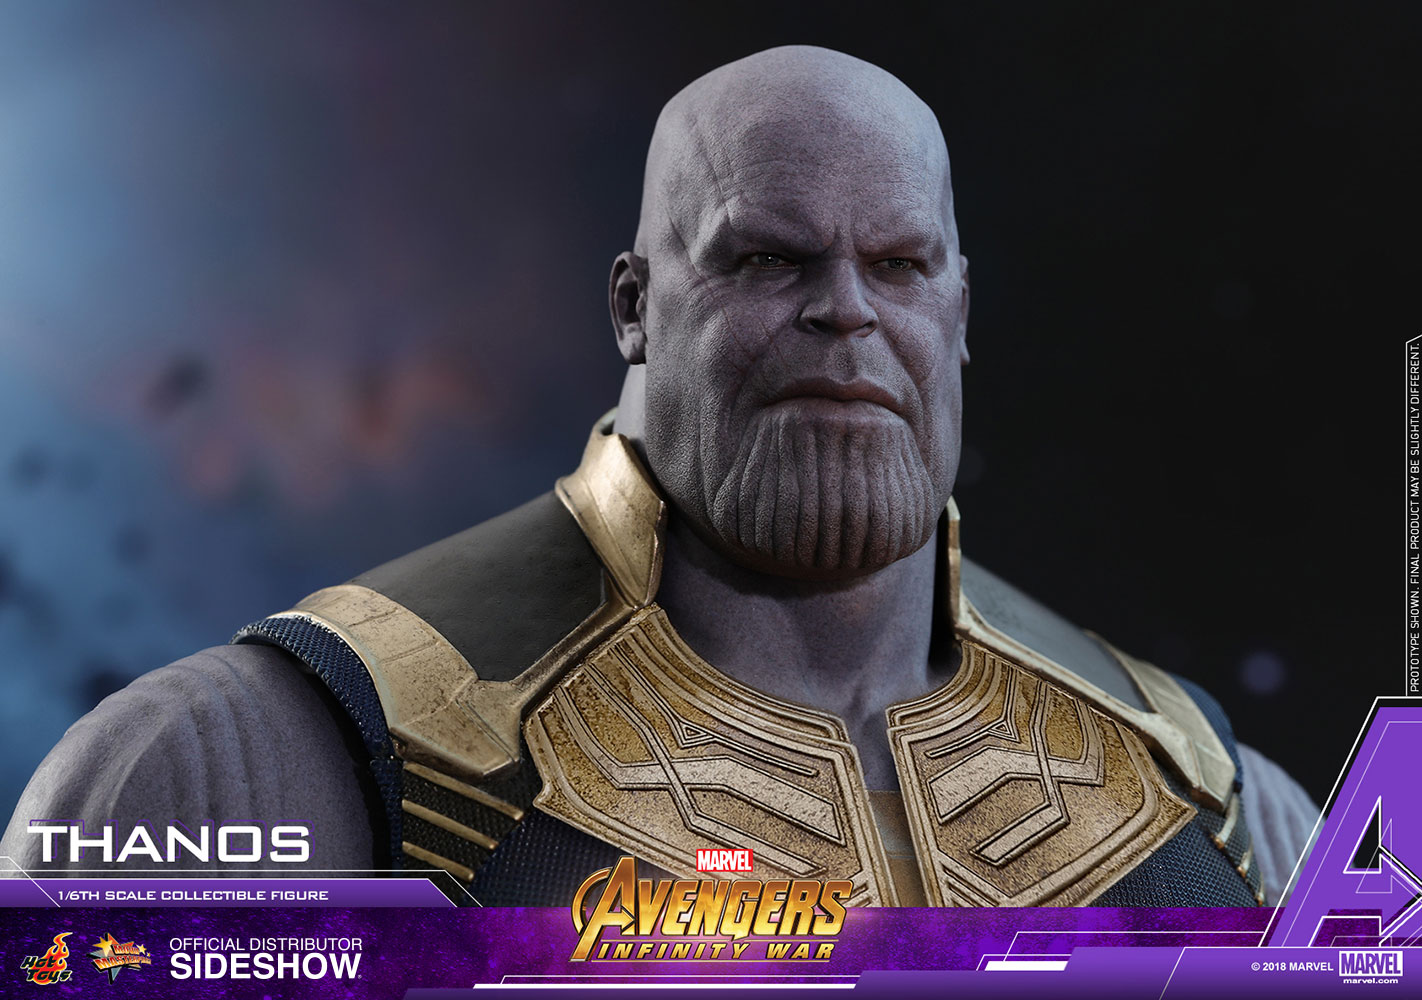 marvel-avengers-infinity-war-thanos-sixth-scale-figure-hot-toys-903429-21